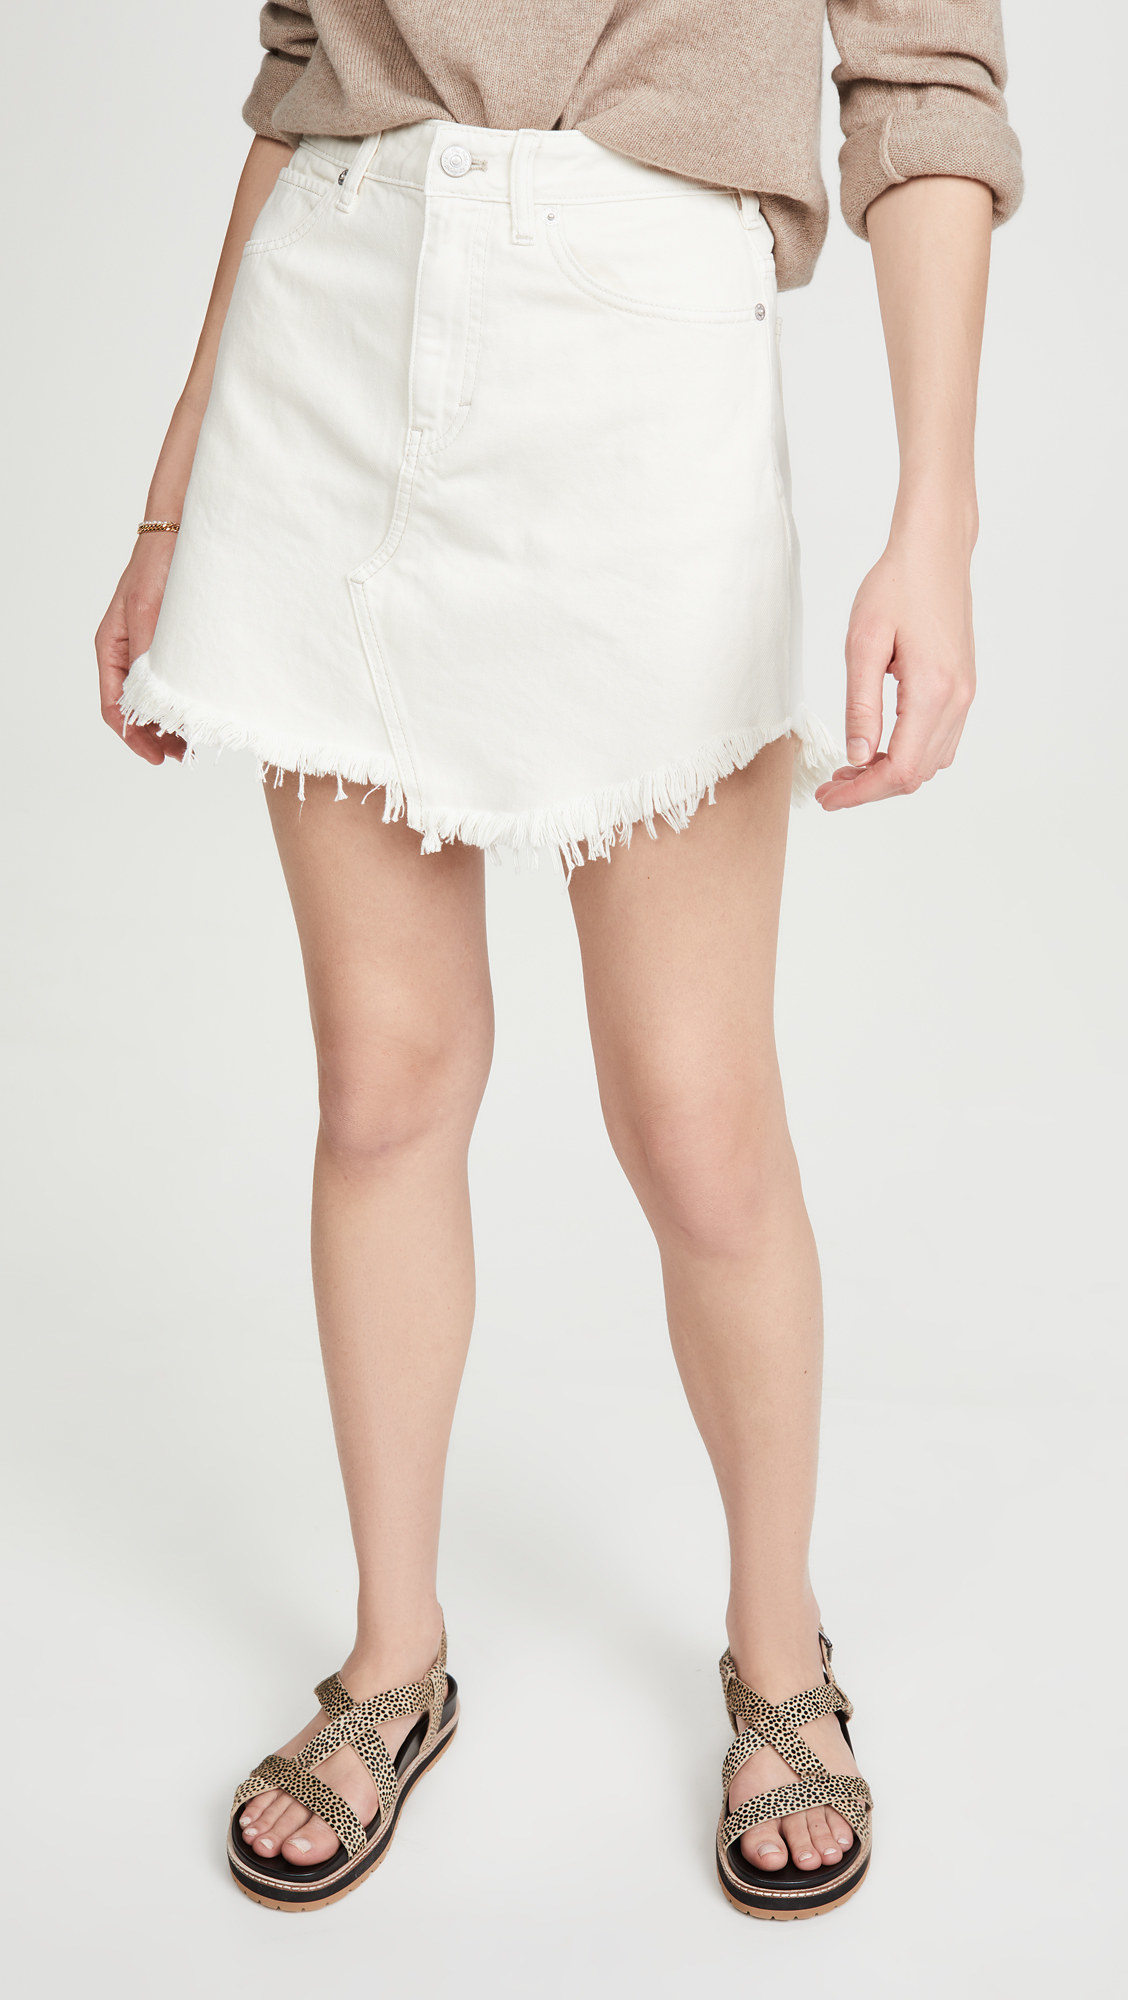 a model wearing the white denim skirt which has a diagonal seam down the bottom, middle